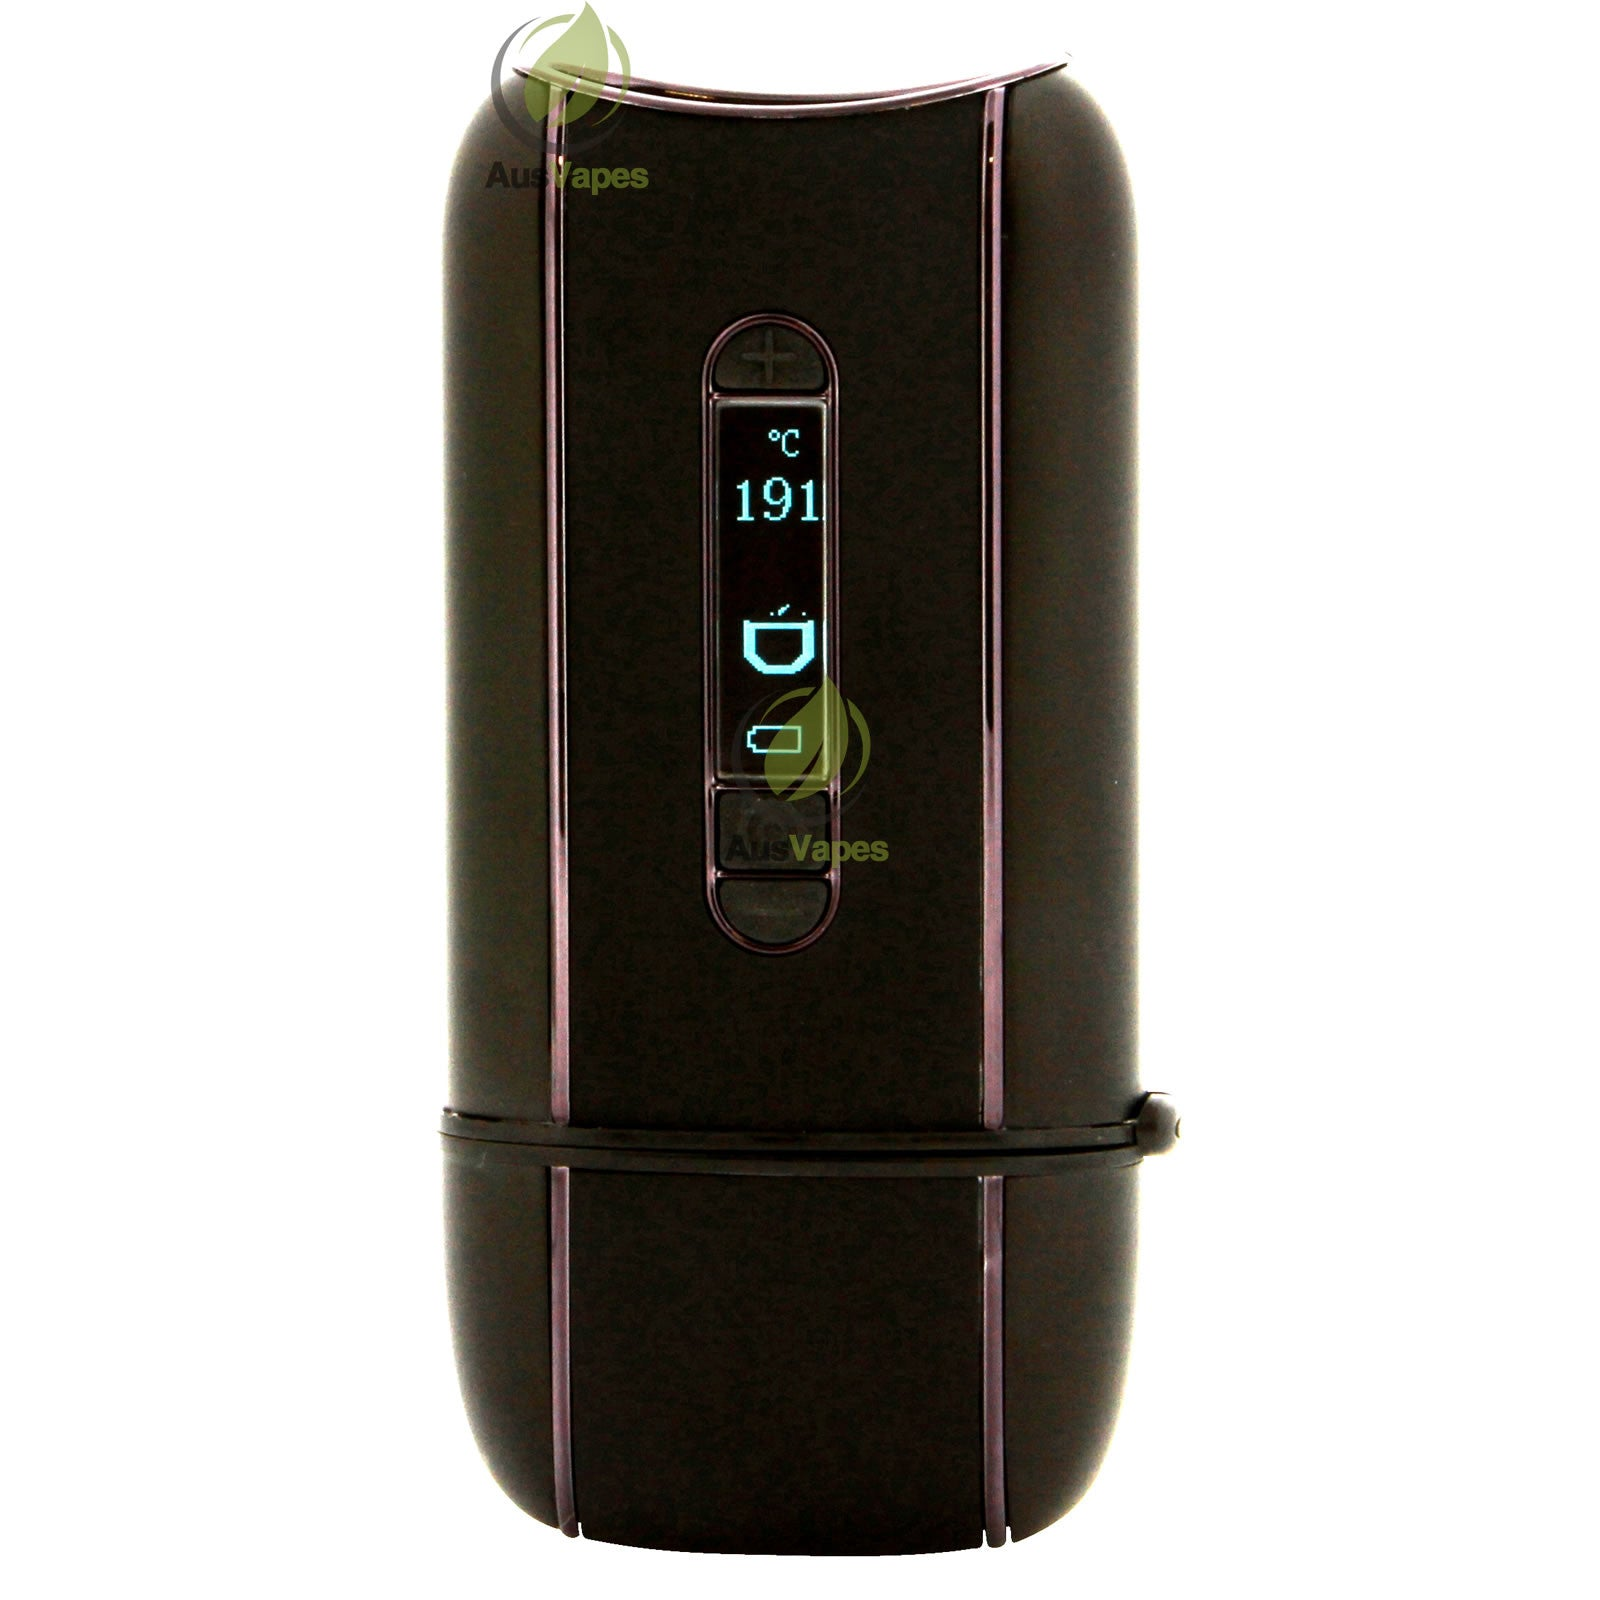 DISCONTINUED Ascent Vaporizer